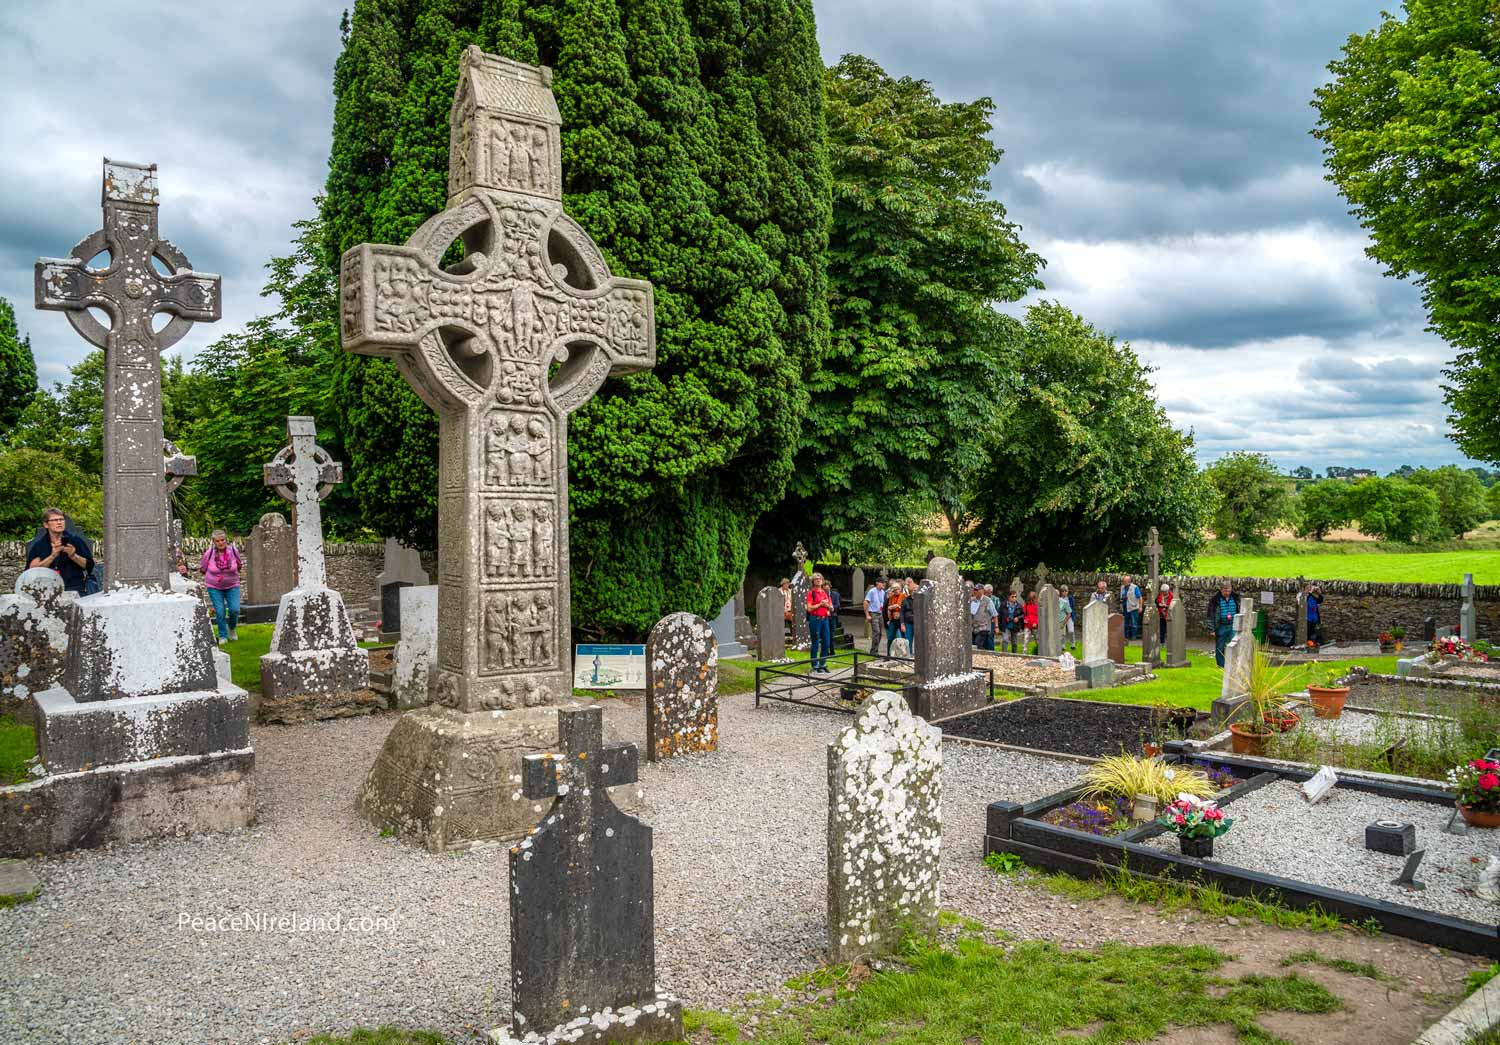 Also at Monasterboice, standing 5.2 metres high, the cross of Muiredach. This 'west face' depicts scenes from the New Testament and there are also scriptural panels on the sides.